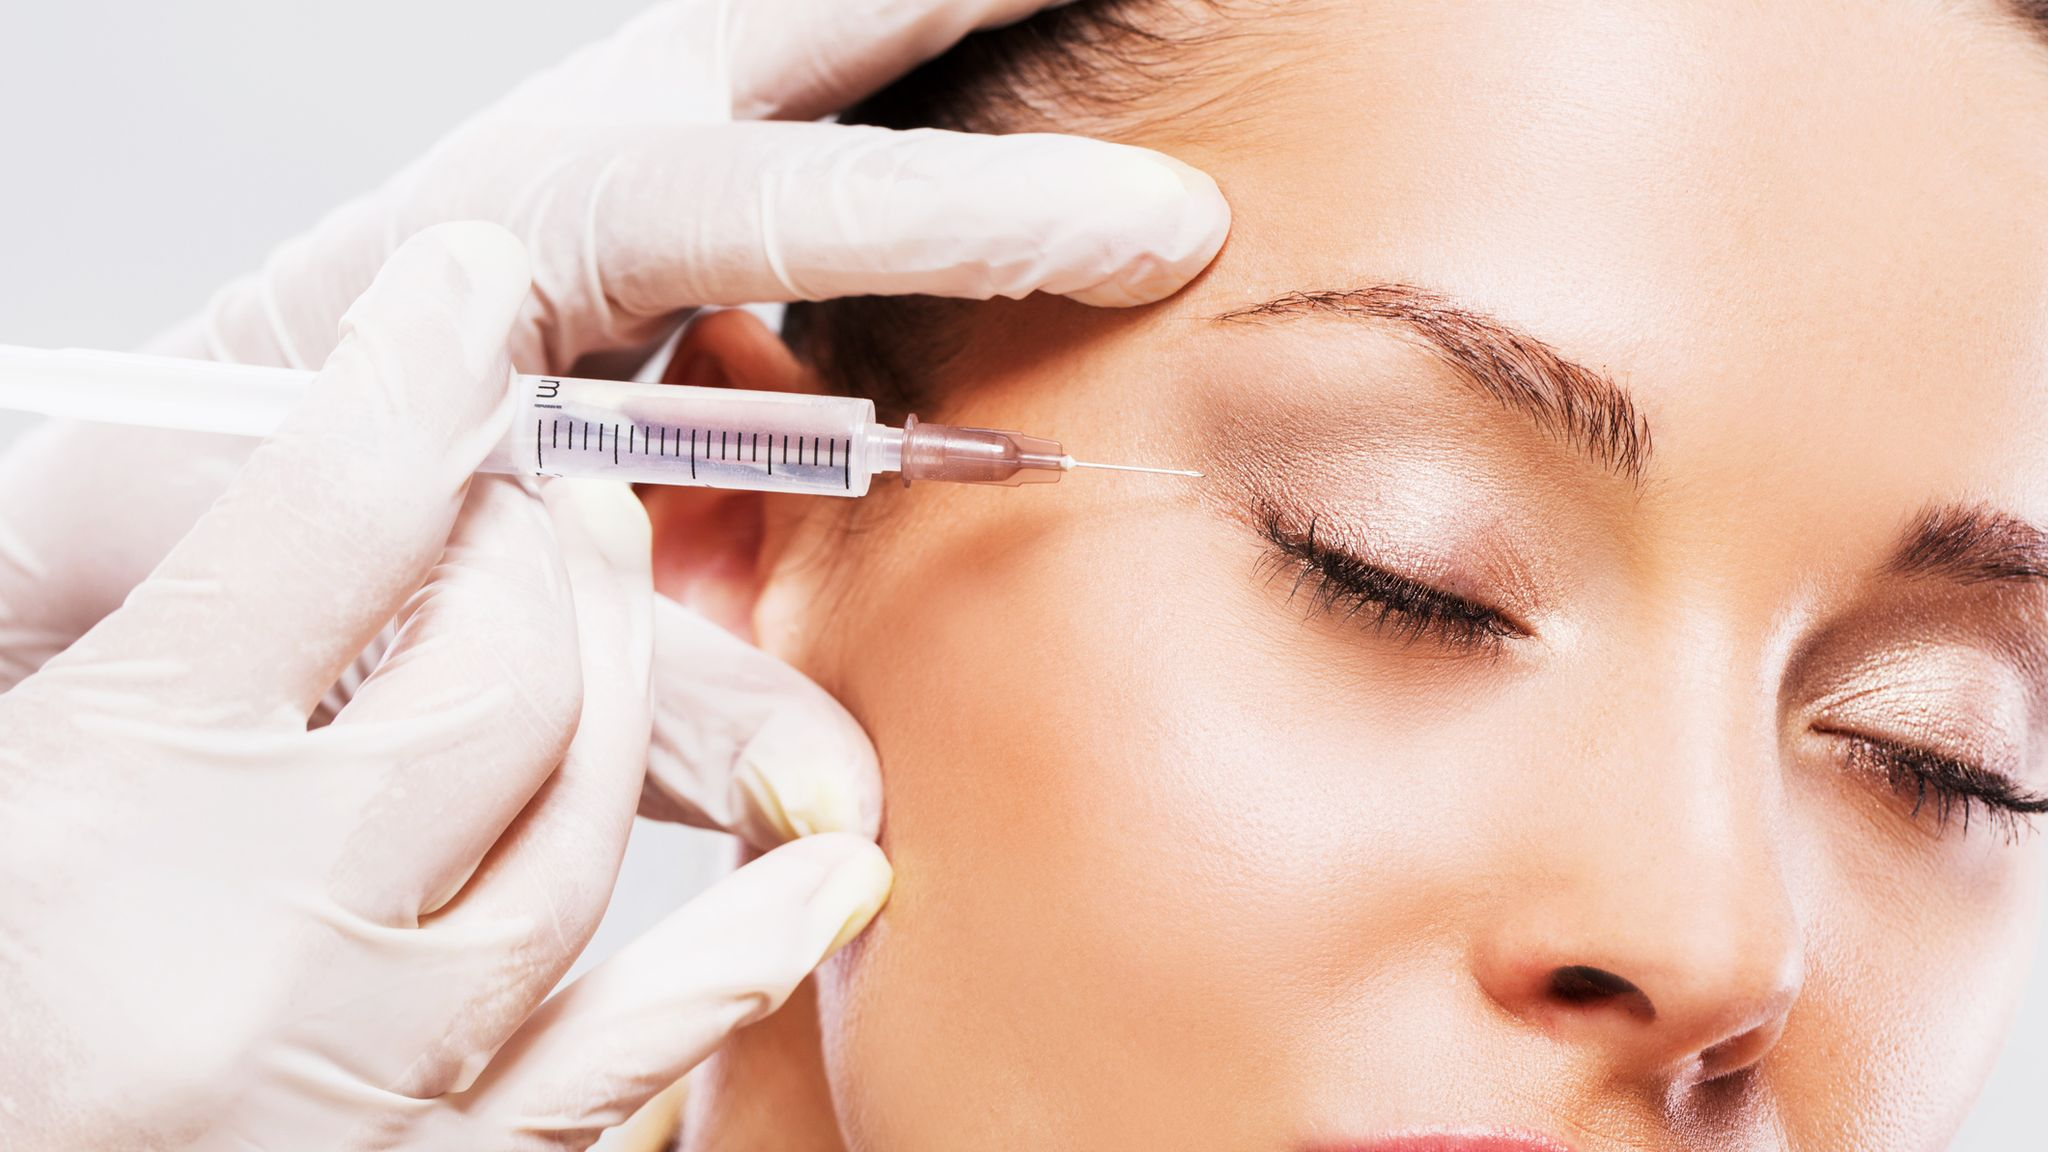 Pharmaceuticals firm AbbVie buys Botox-maker Allergan for 49.5bn